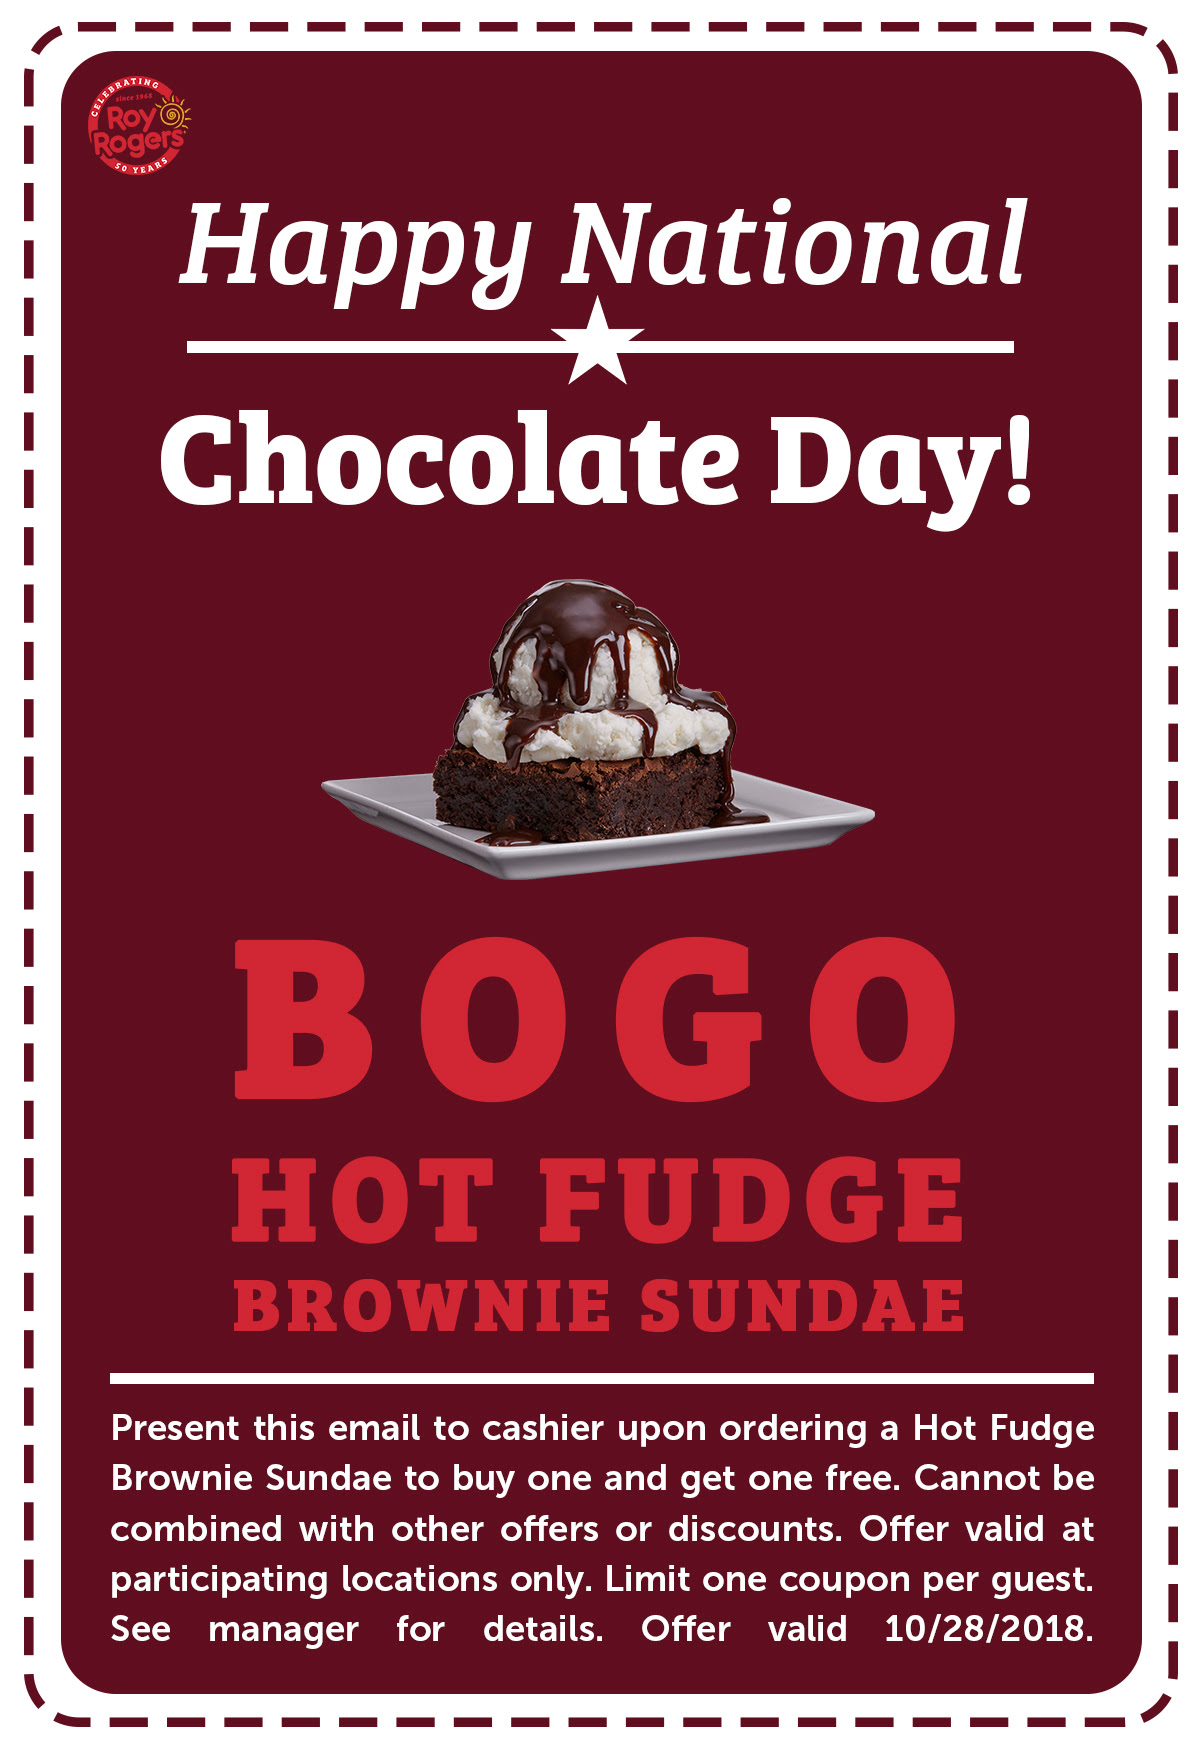 Roy Rogers Coupon September 2019 Second hot fudge brownie sundae free today at Roy Rogers restaurants